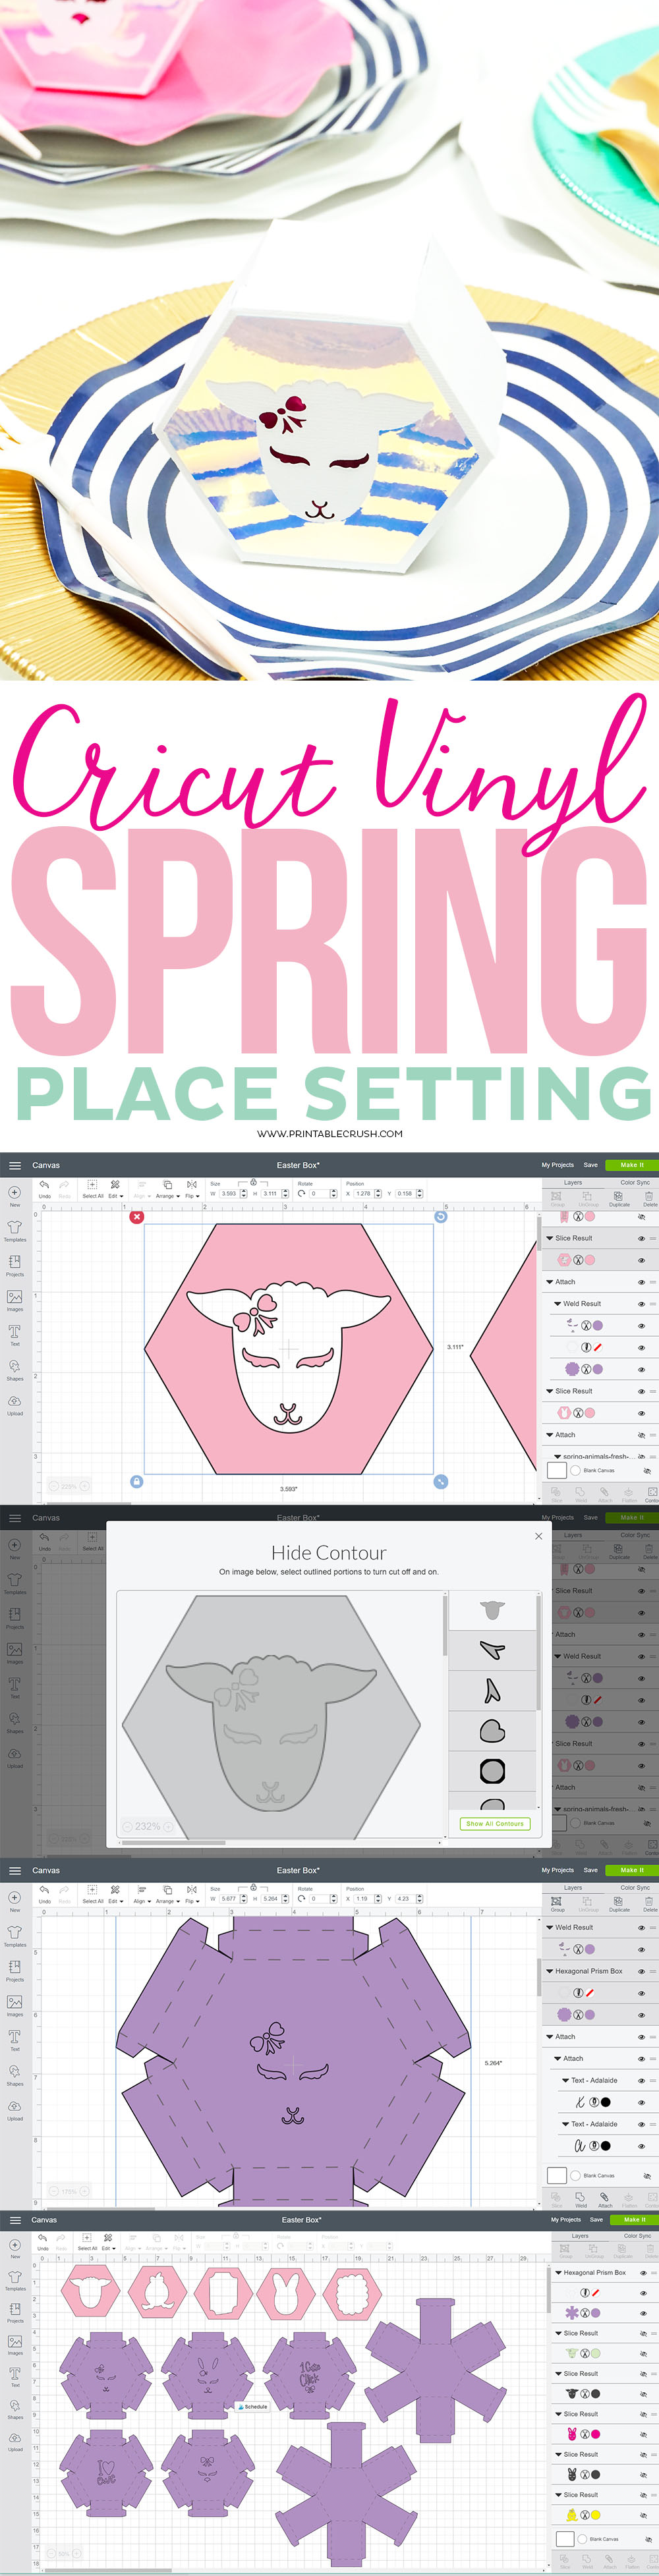 Cricut Vinyl Spring Place Setting step-by-step collage